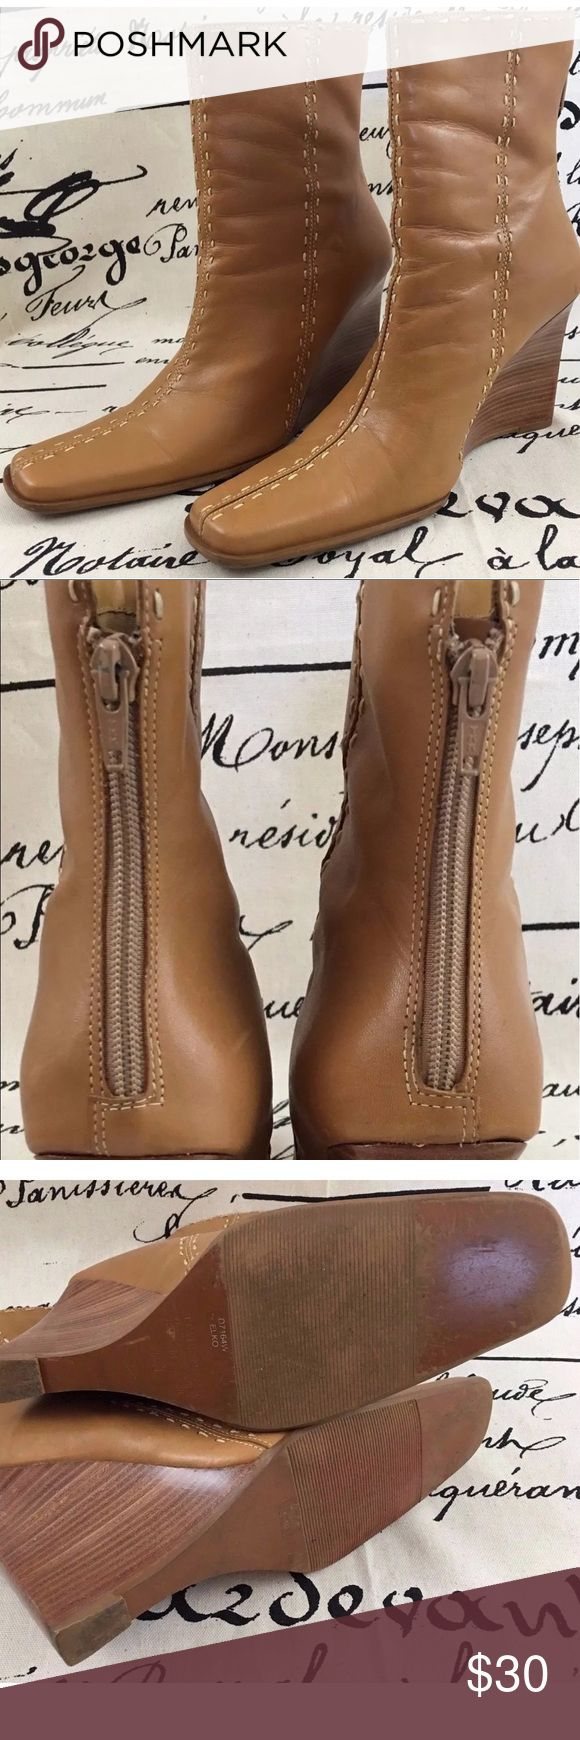 Item: Diba USA Women's Wedge Style Boots Leather Item: Diba USA Women's Wedge Style Boots Leather Upper Modern Stitching Size 7.5 Med Style: Camel Color Square Toe Wedge Rear Zip Up Casual or Professional Style Boots Color: Camel/Tan Brown Size: 7.5 Medium Diba Shoes Ankle Boots & Booties